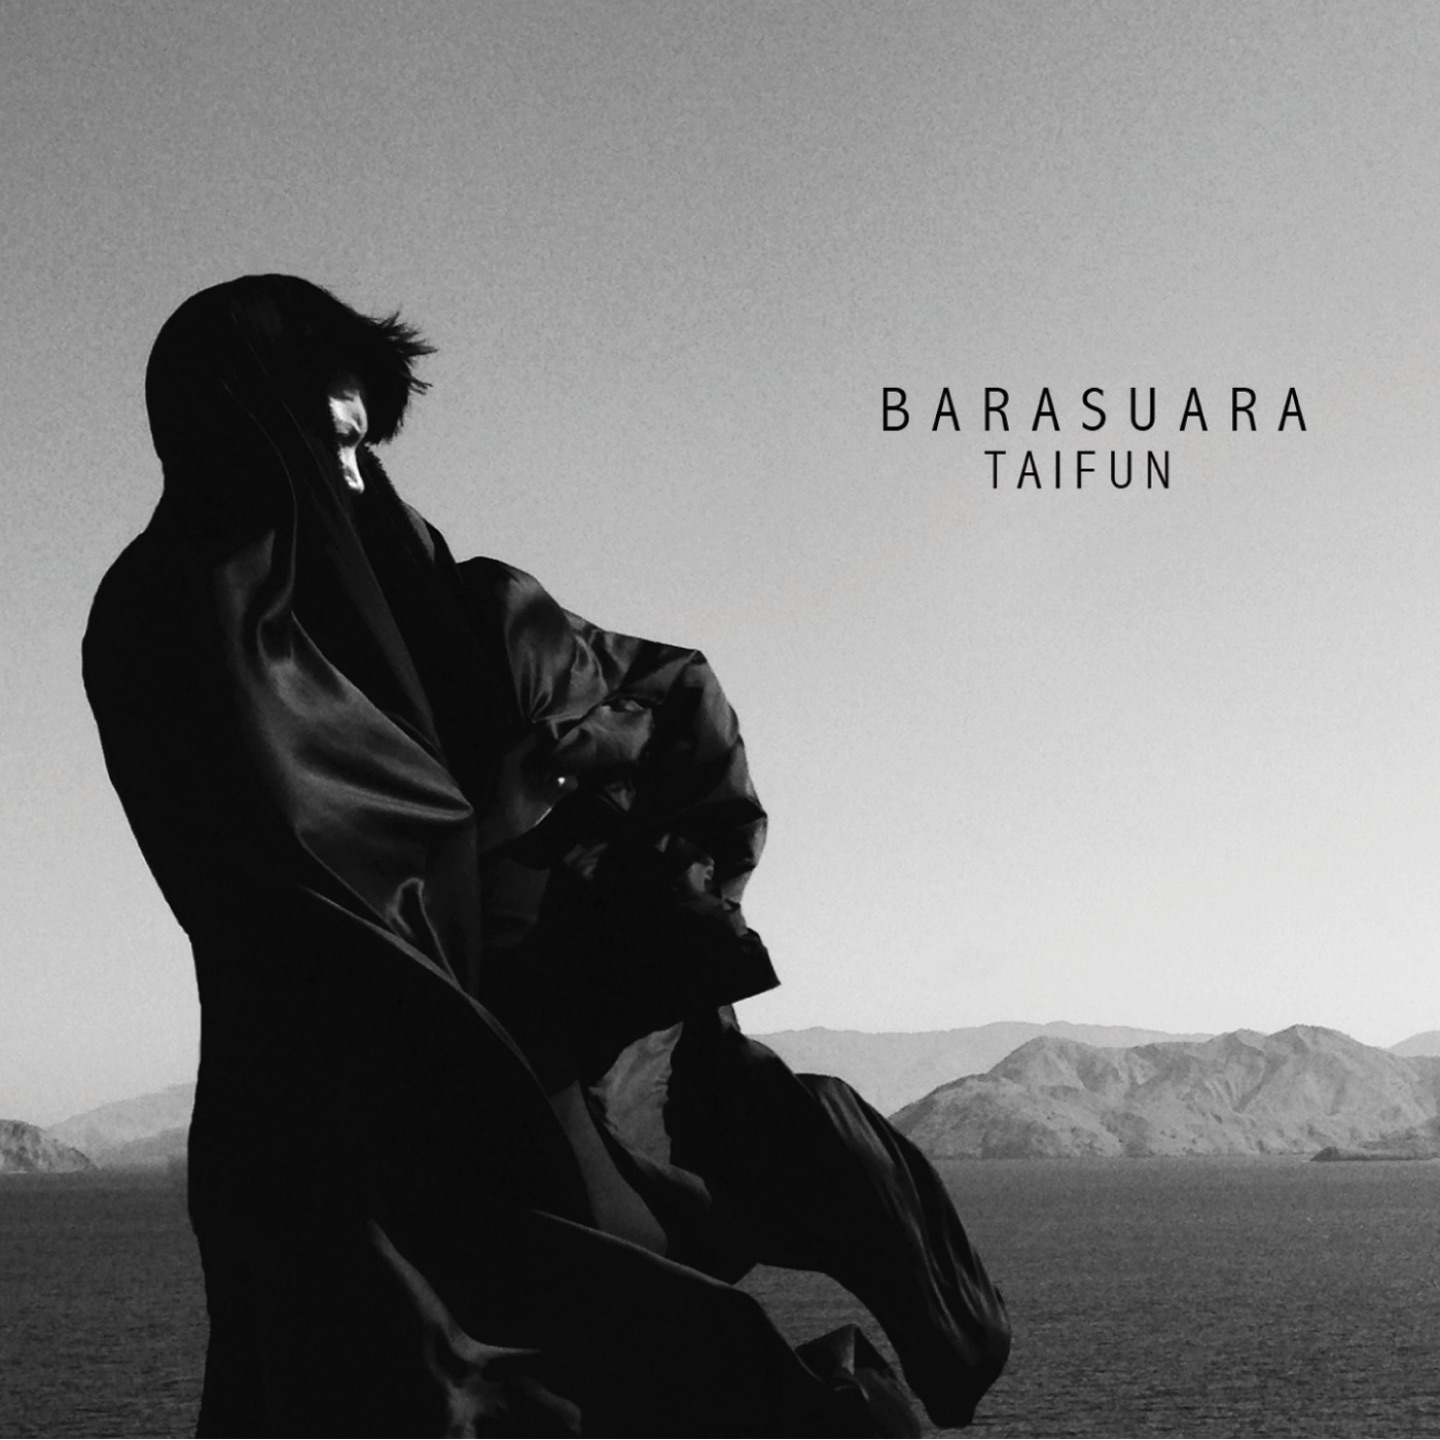 Barasuara - Taifun - Album [iTunes Plus M4A AAC]